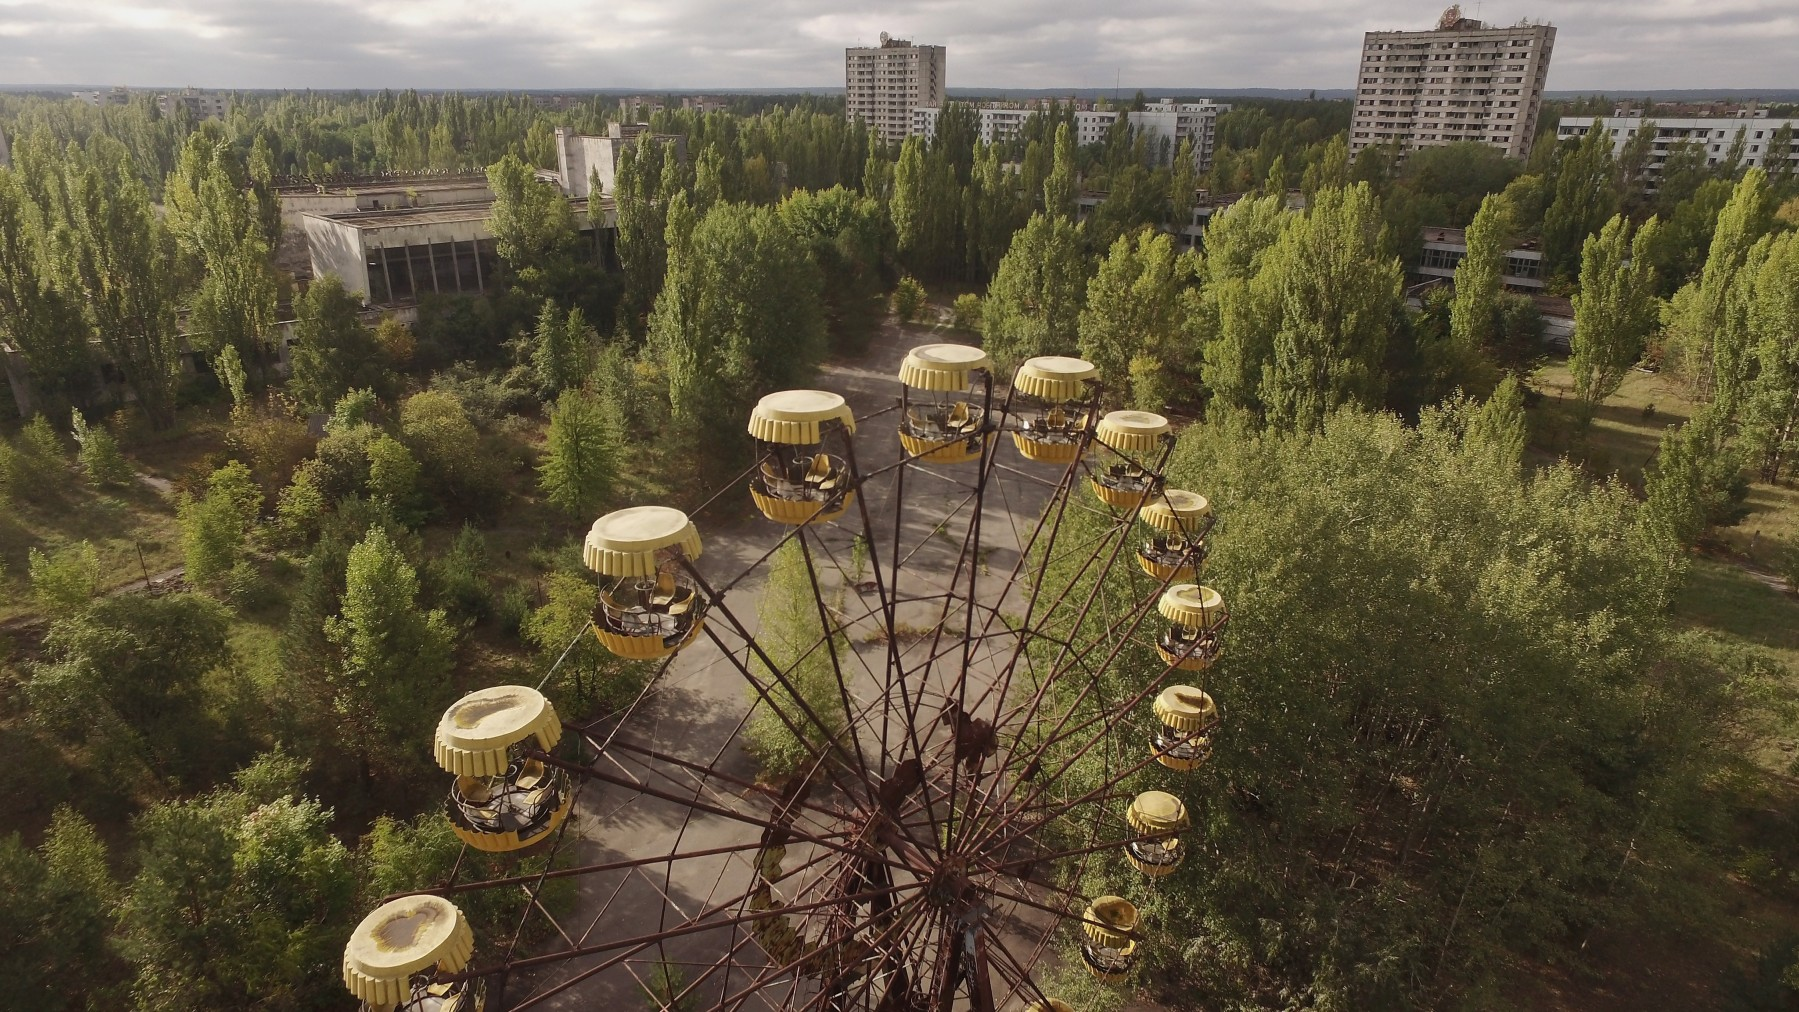 PRIPYAT, UKRAINE - SEPTEMBER 30:  In this aerial view an abandoned ferris wheel stands on a public space overgrown with trees in the former city center on September 30, 2015 in Pripyat, Ukraine. Pripyat lies only a few kilometers from the former Chernobyl nuclear power plant and was built in the 1970s to house the plant's workers and their families. On April 26, 1986, technicians at Chernobyl conducting a test inadvertently caused reactor number four to explode, sending plumes of highly radioactive particles and debris into the atmosphere. Authorities evacuated 120,000 people from the area, including 43,000 from Pripyat. Today Pripyat is a ghost-town, its apartment buildings, shops, restaurants, hospital, schools, cultural center and sports facilities derelict and its streets overgrown with trees. The city lies in the inner exclusion zone around Chernobyl where hot spots of persistently high levels of radiation make the area uninhabitable for thousands of years to come.  (Photo by Sean Gallup/Getty Images)